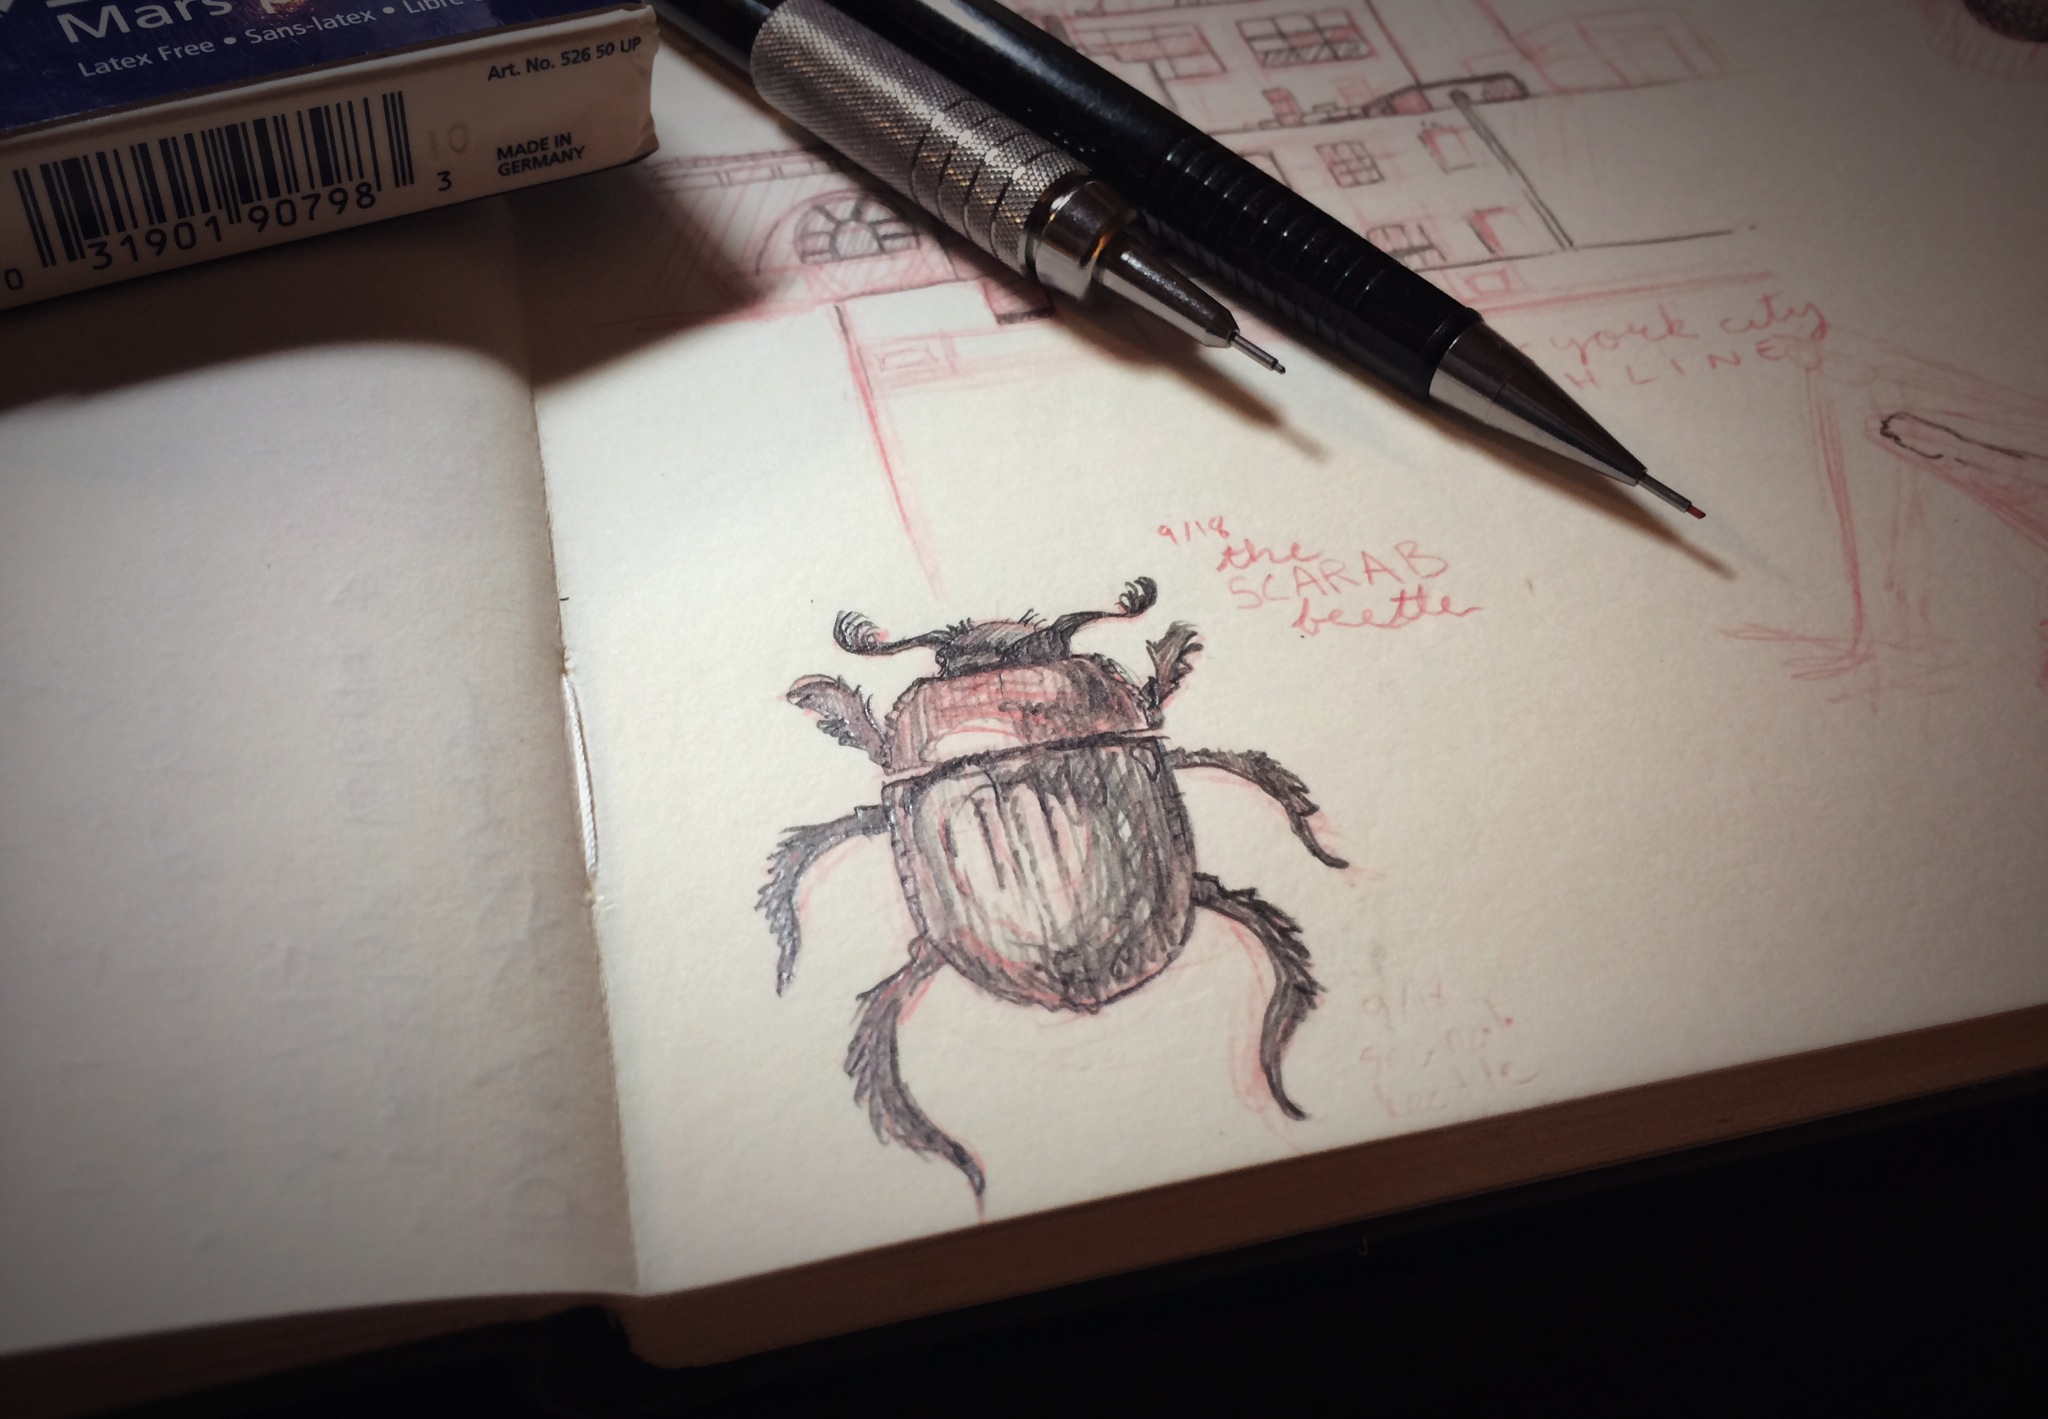 Scarab Beetle sketch by Chloe Yingst | chloedraws.com